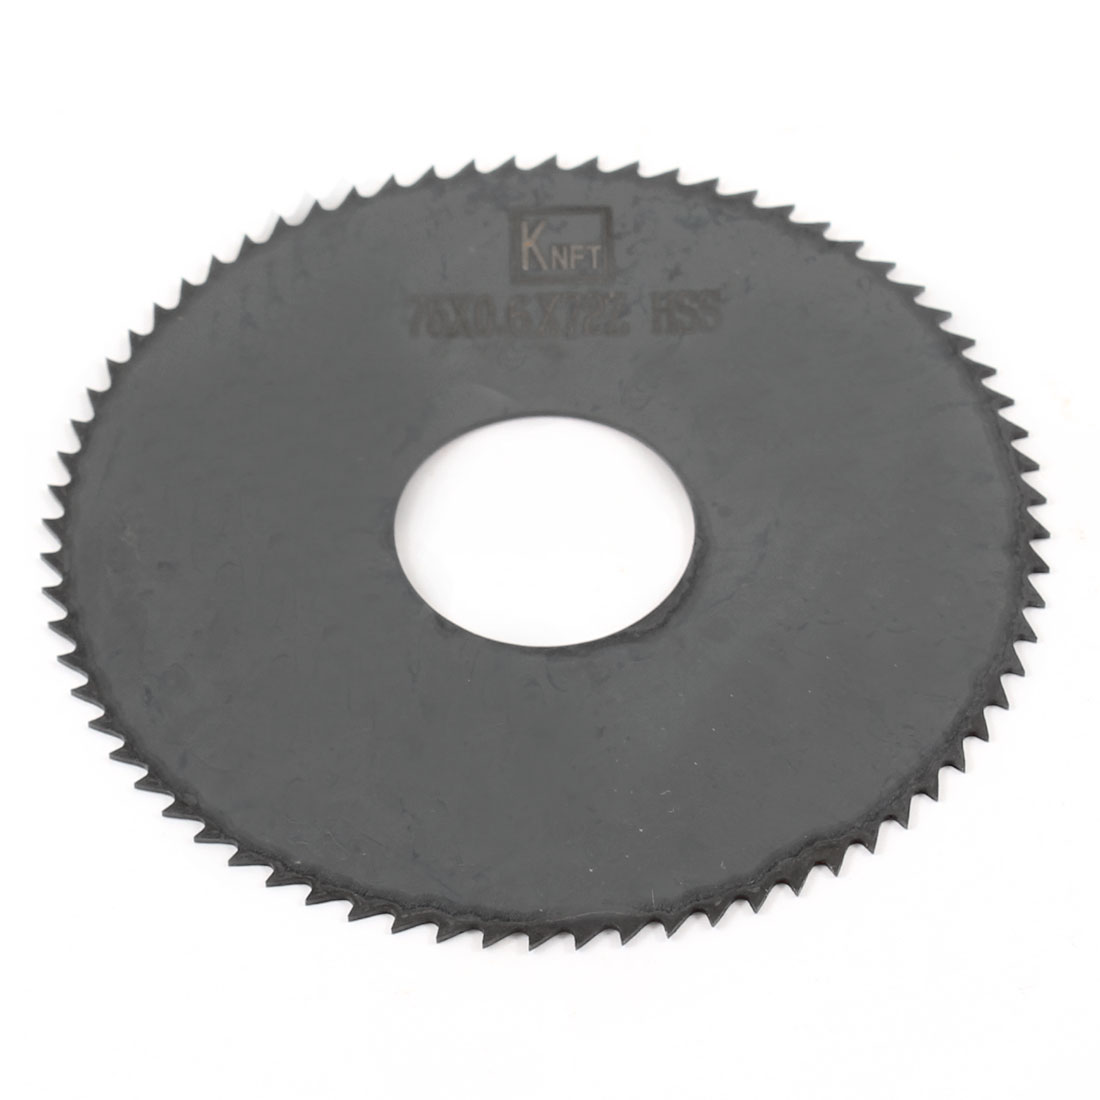 Hand Tool 75mm x 22mm x 0.6mm 72 Peg Teeth HSS Slitting Saw Blade